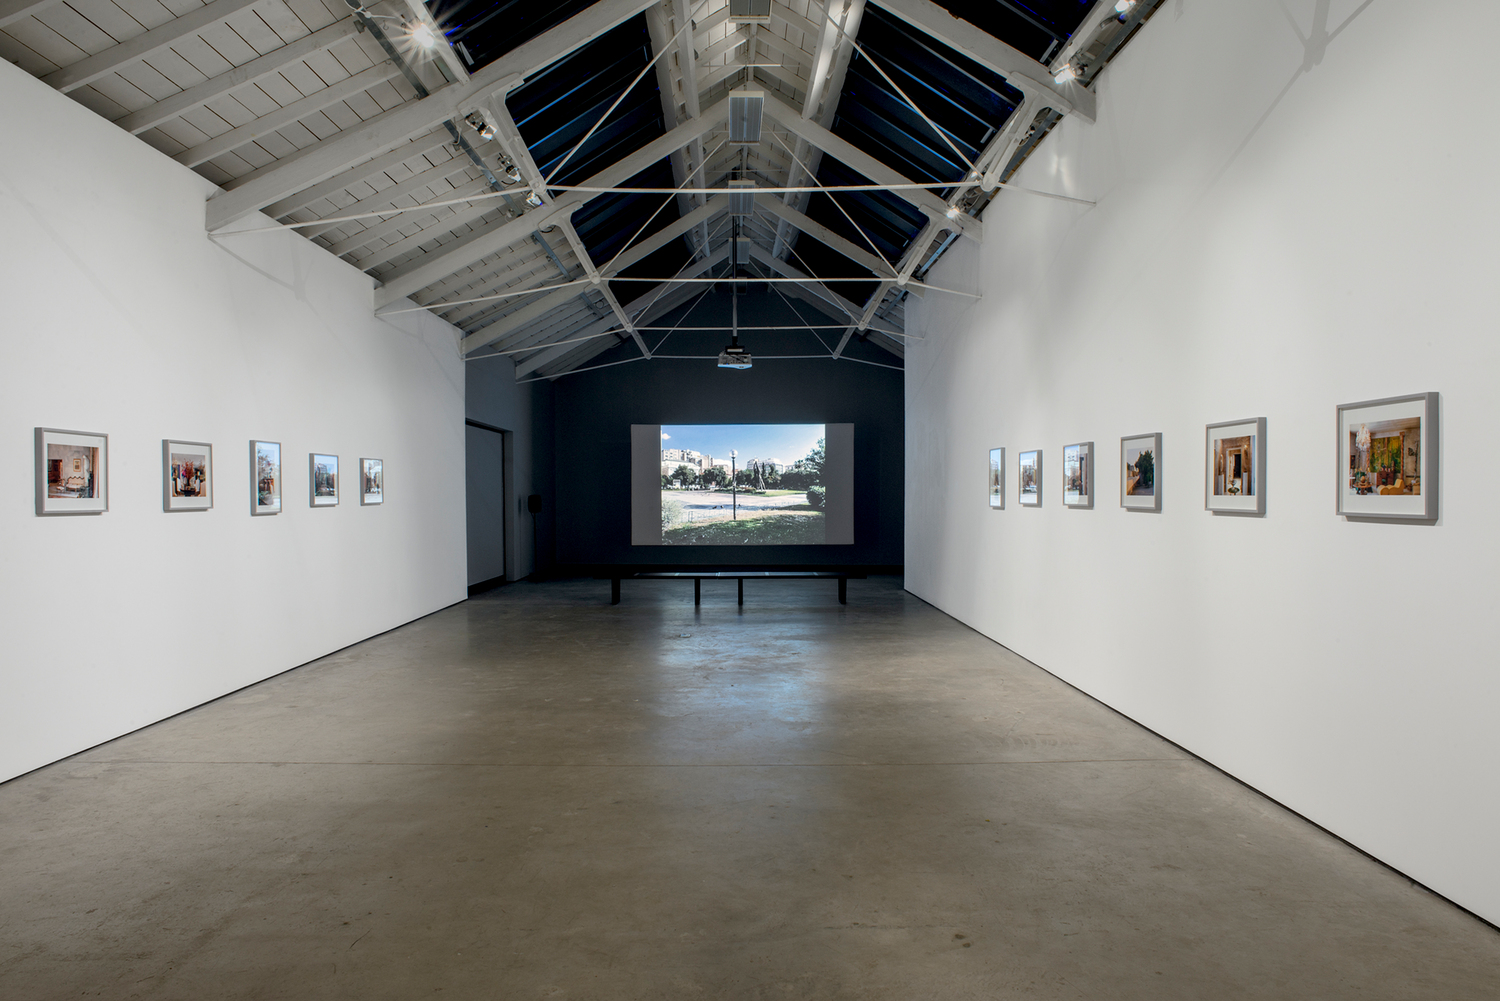 Installation view Modern Institute, Osborne Street, Glasgow, 2017